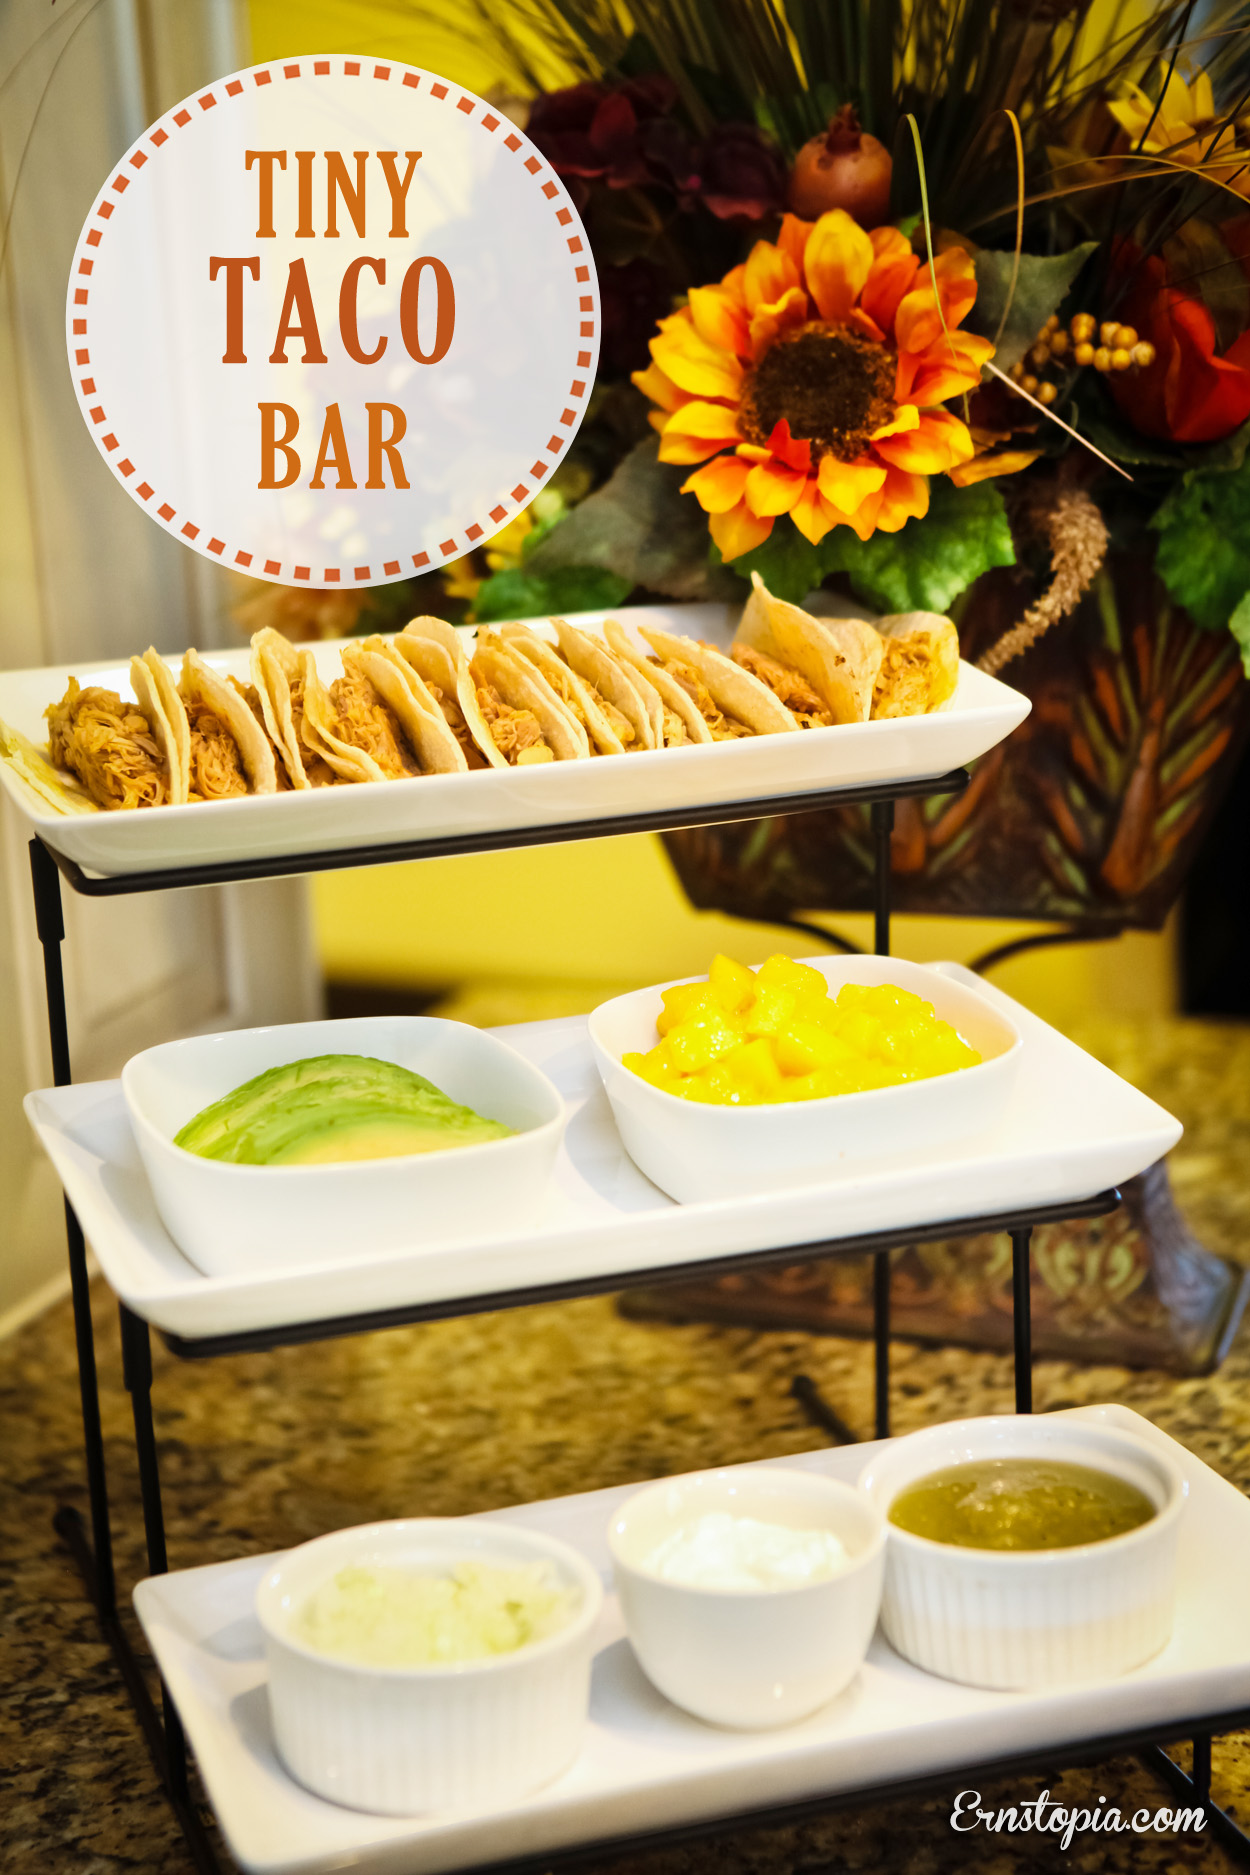 Tiny Taco Bar Main